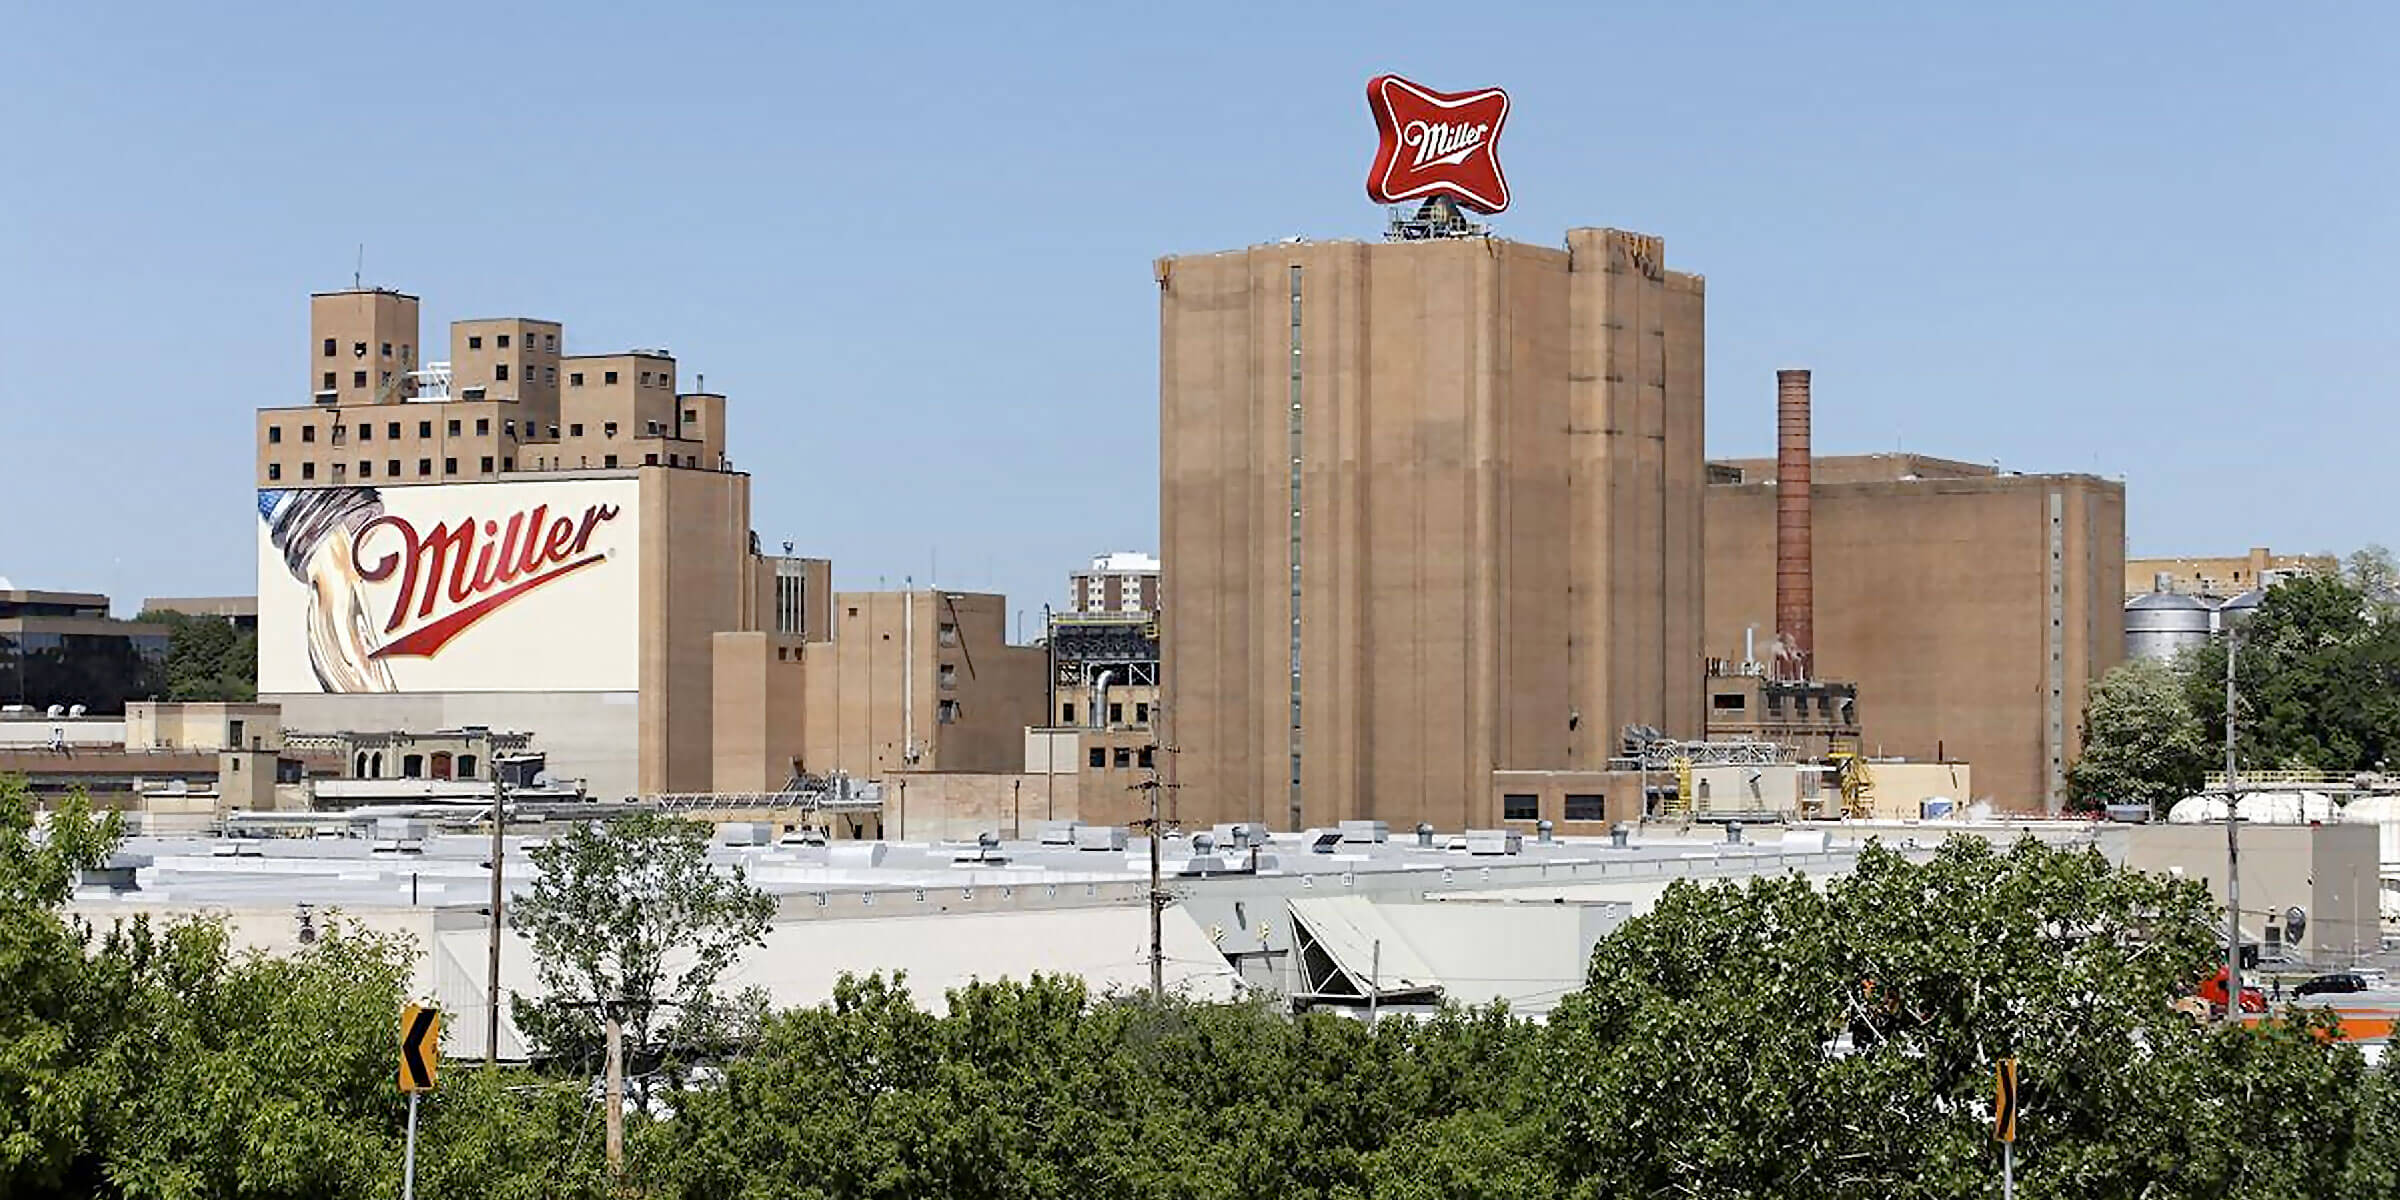 The headquarters and production facility for Miller Brewing Company, part of Molson Coors Beverage Company, in Milwaukee, Wisconsin